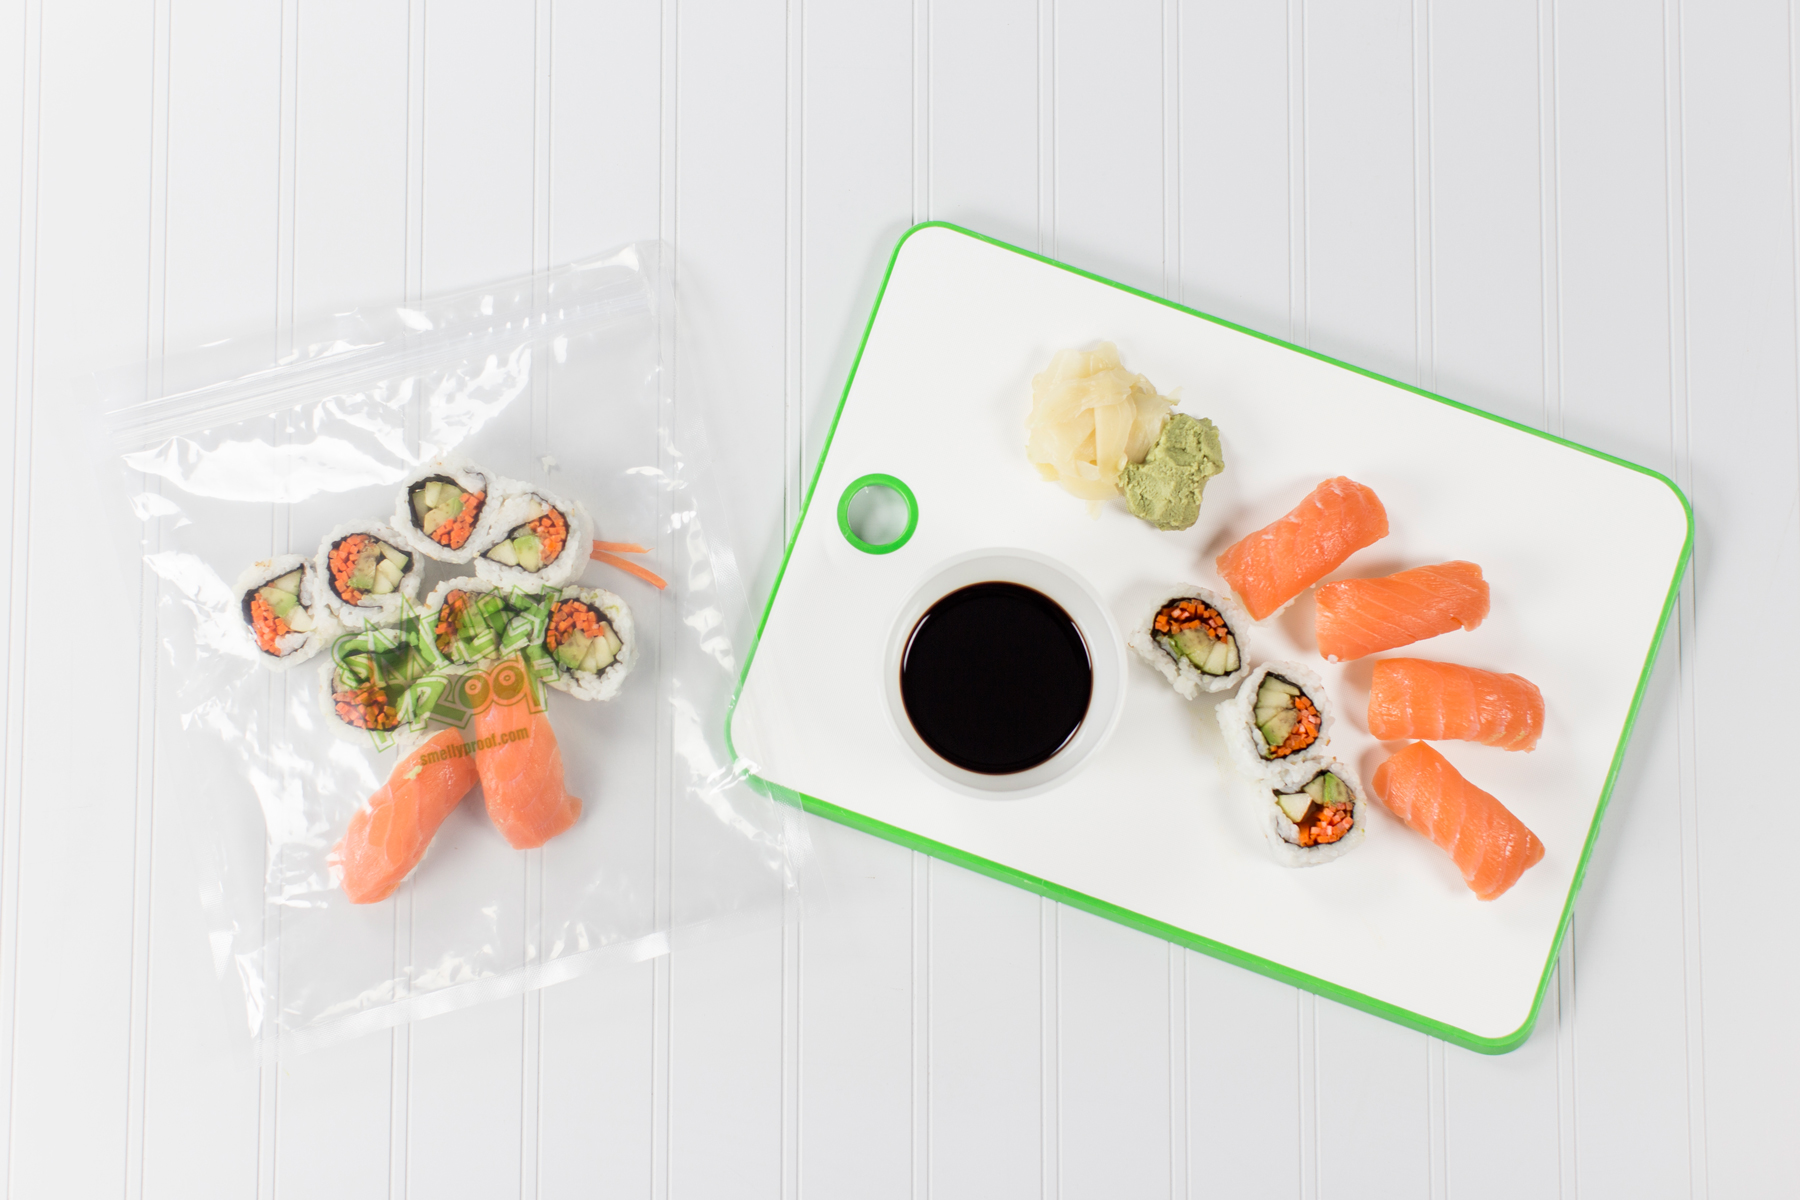 Smelly-Proof-Bags-12-Sushi.jpg